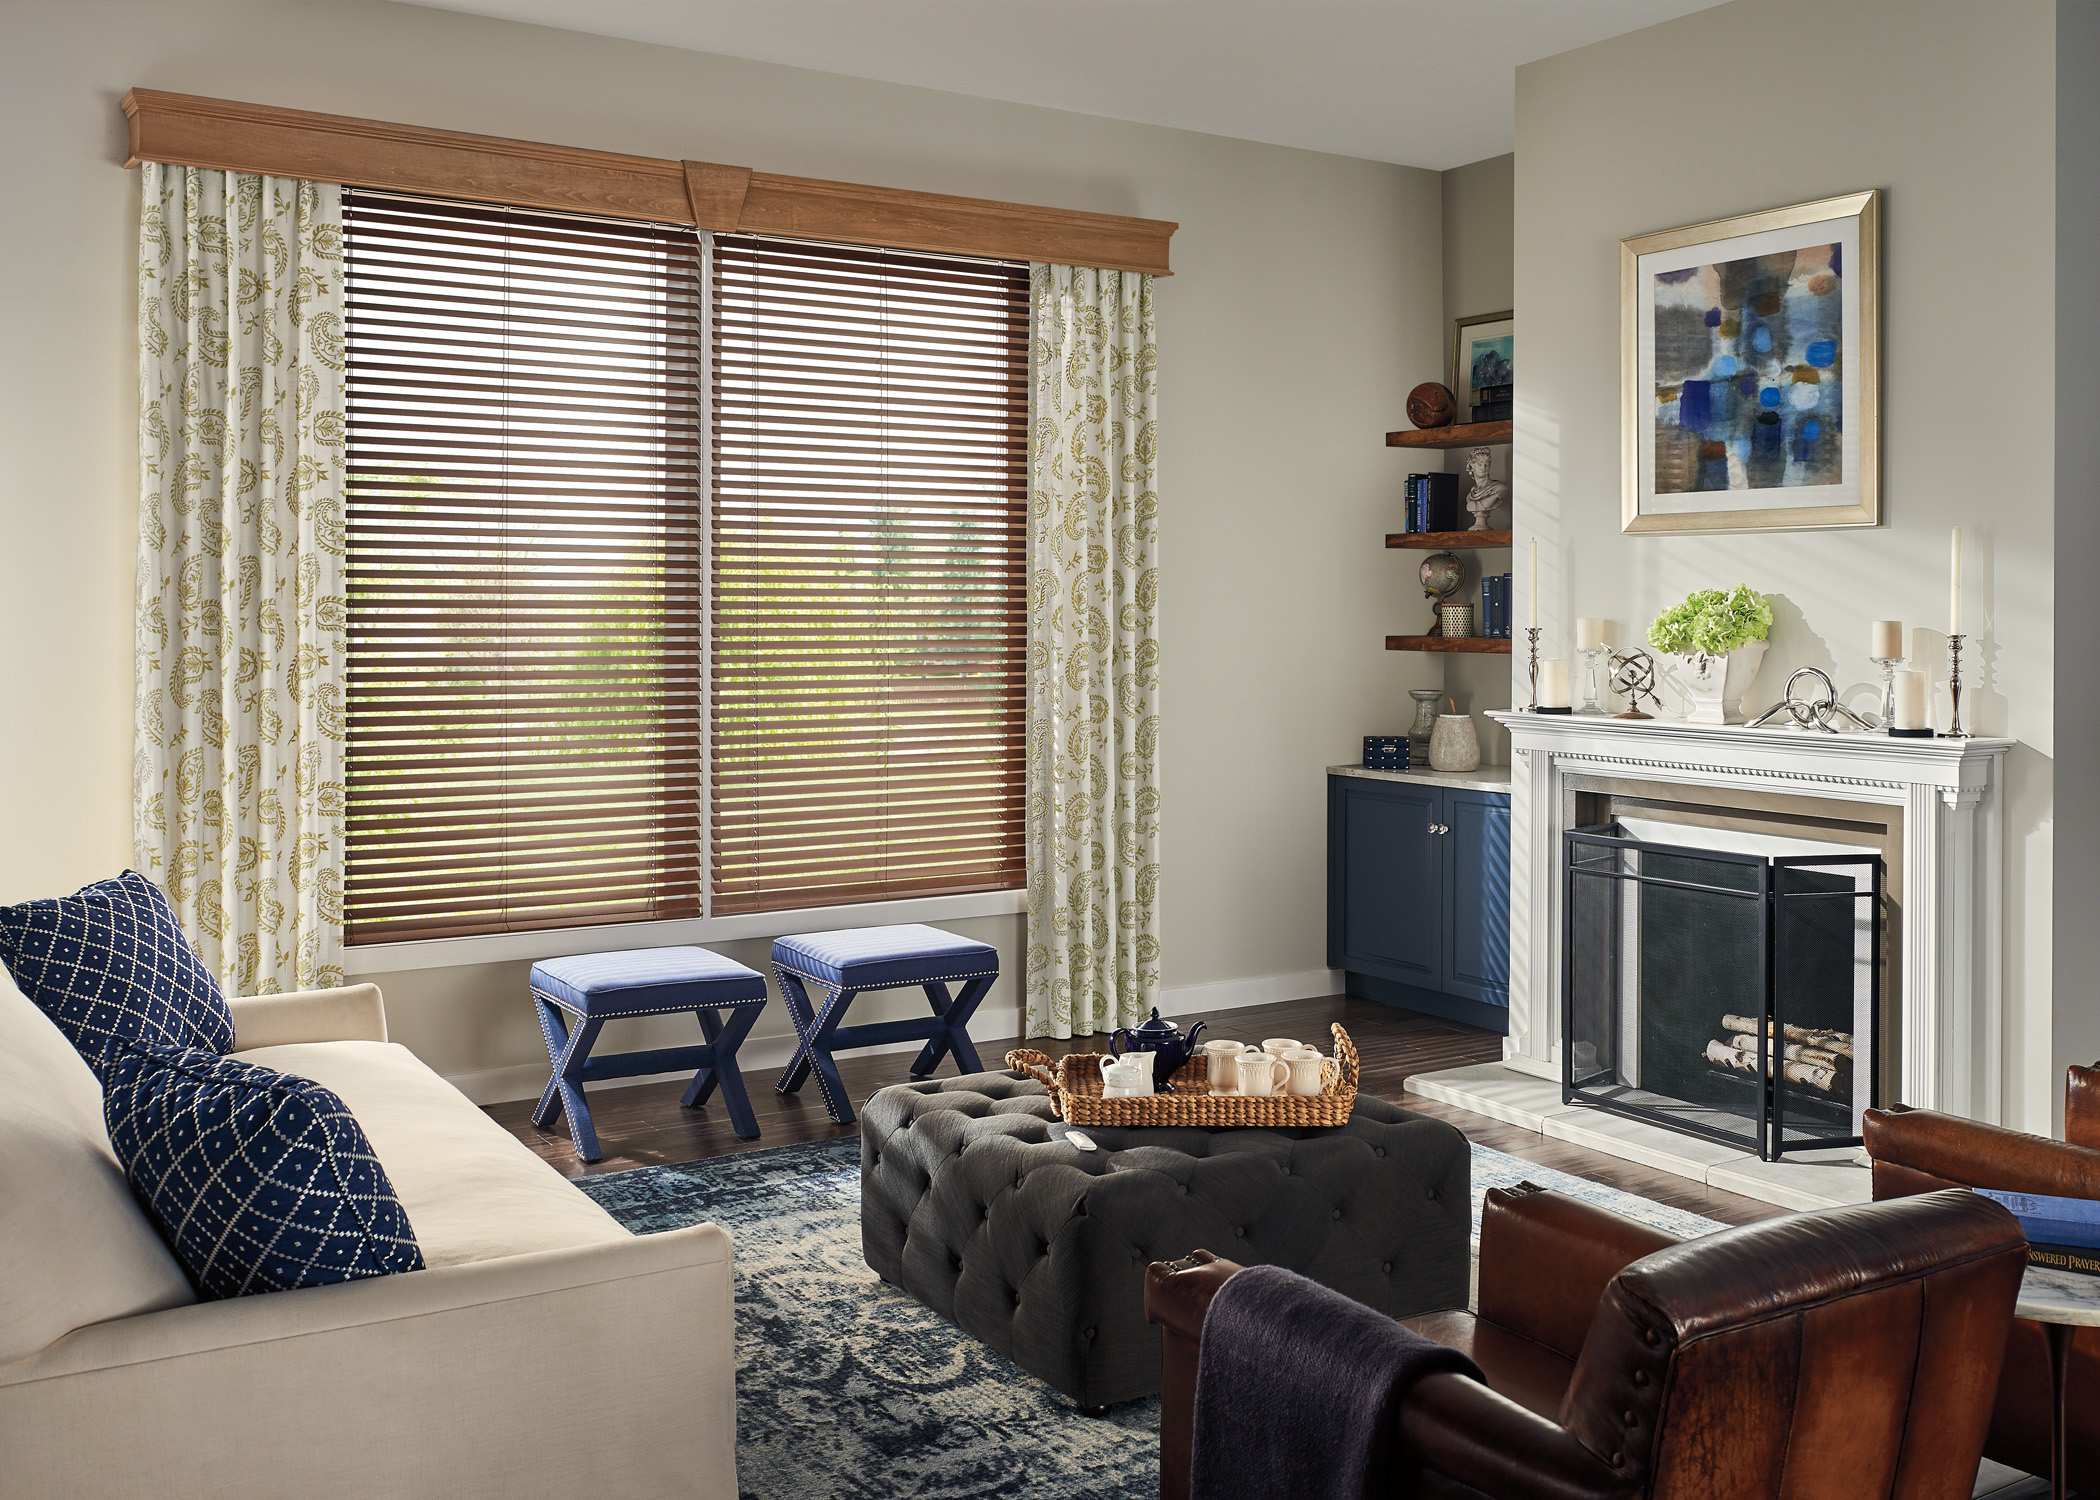 Graber_Wood Blinds_LivingRoom3.jpg